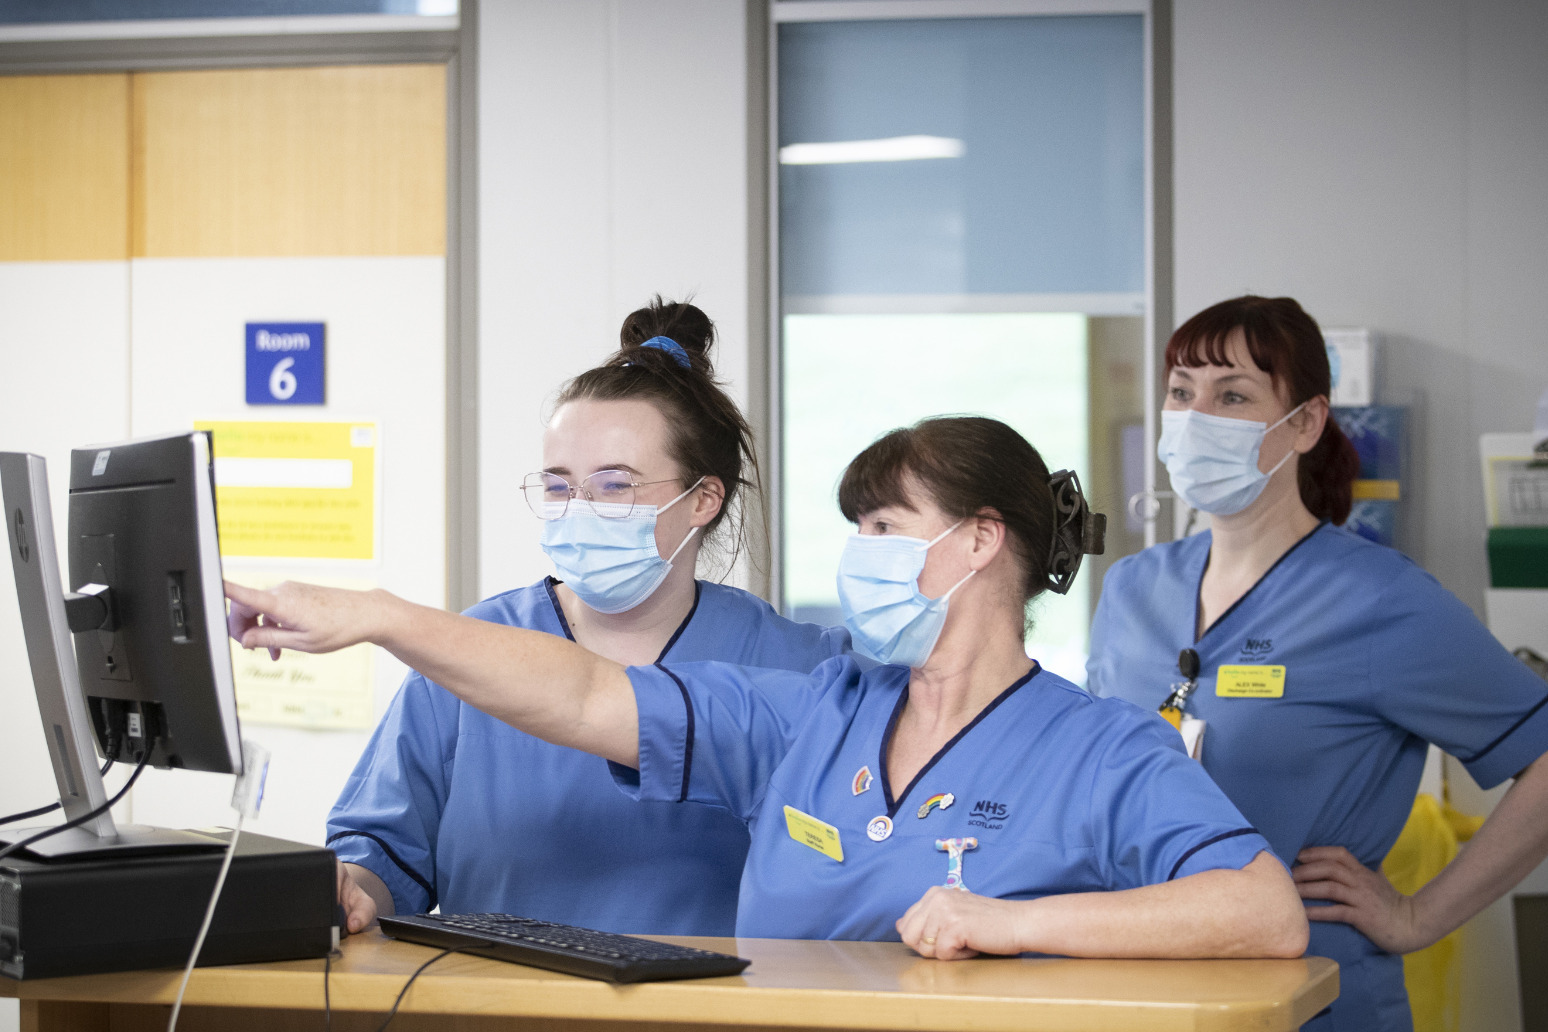 Winter will be tough for NHS nurses amid high sickness rates